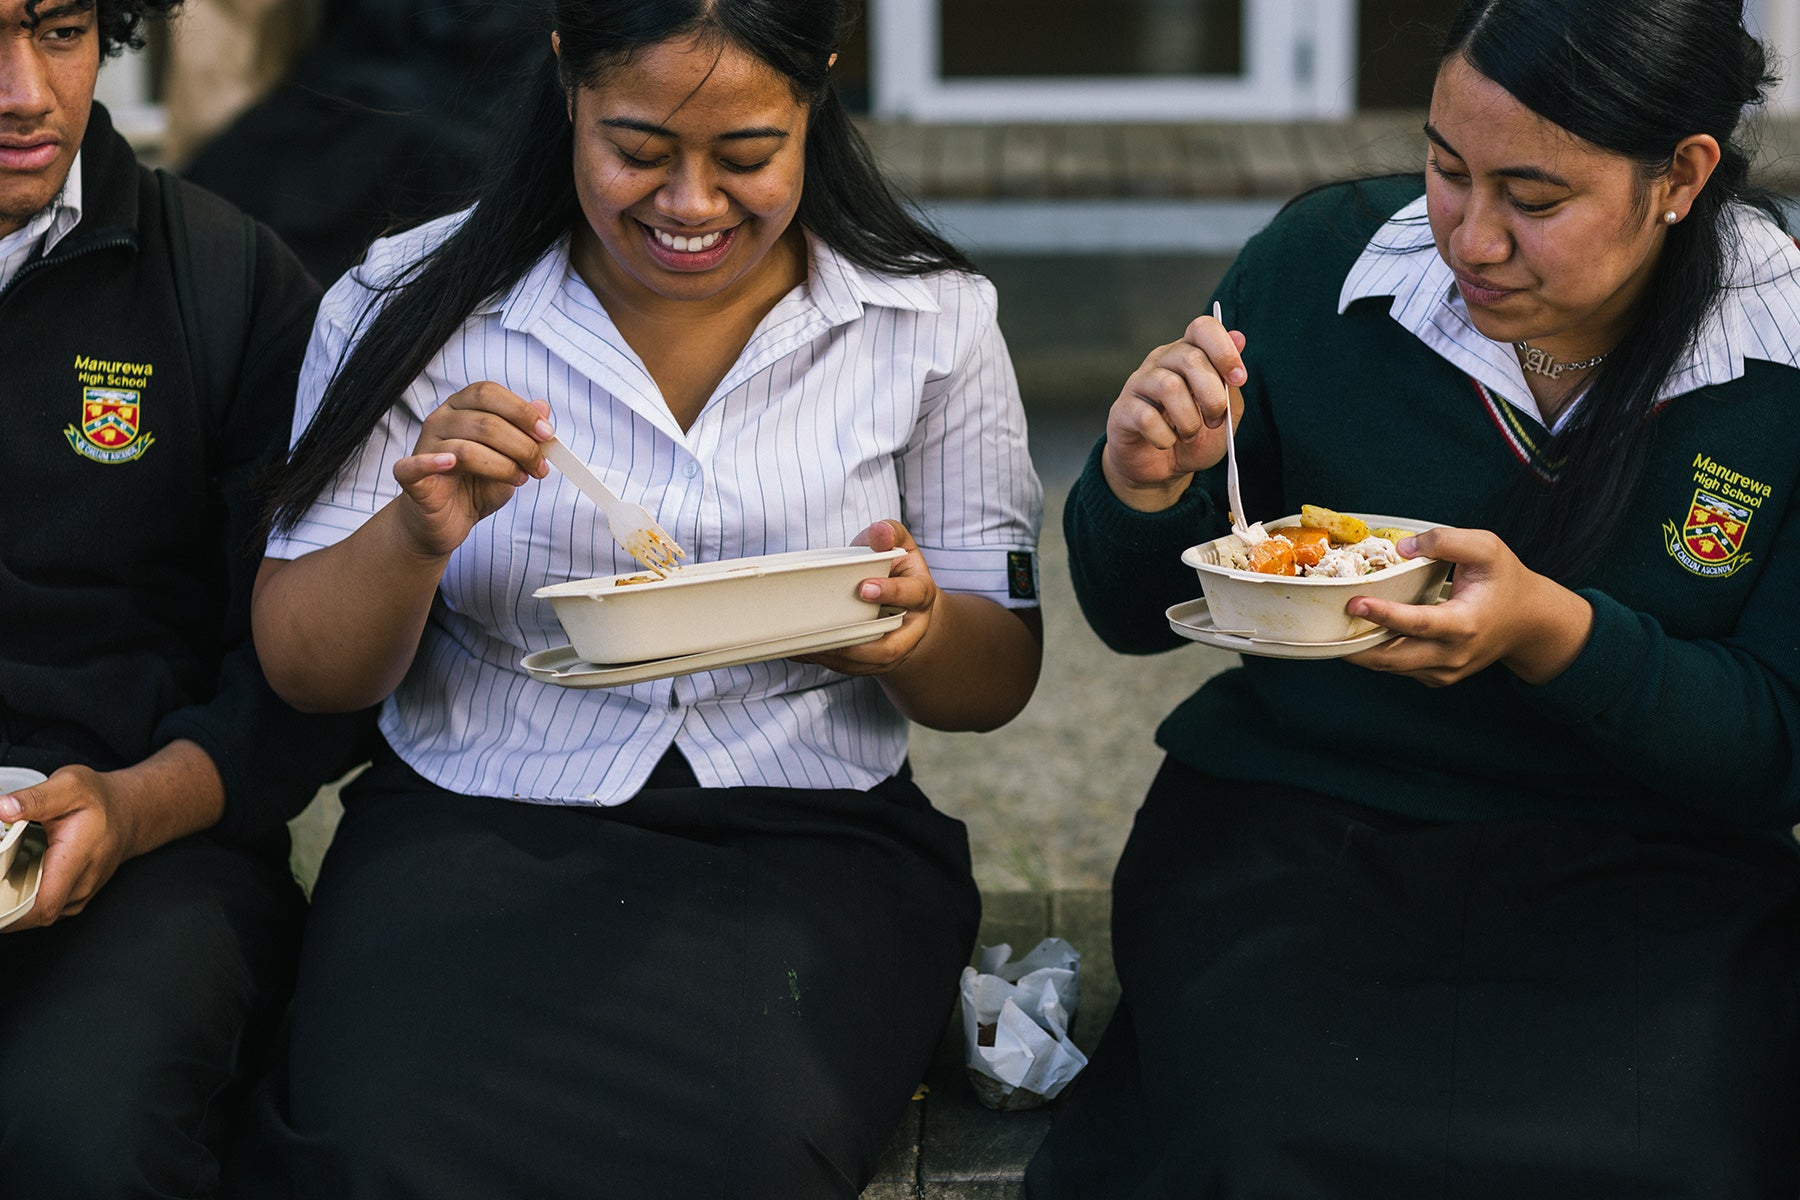 Manurewa High School students enjoying their Ka Ora, Ka Ako lunch in Ecoware compostable packaging